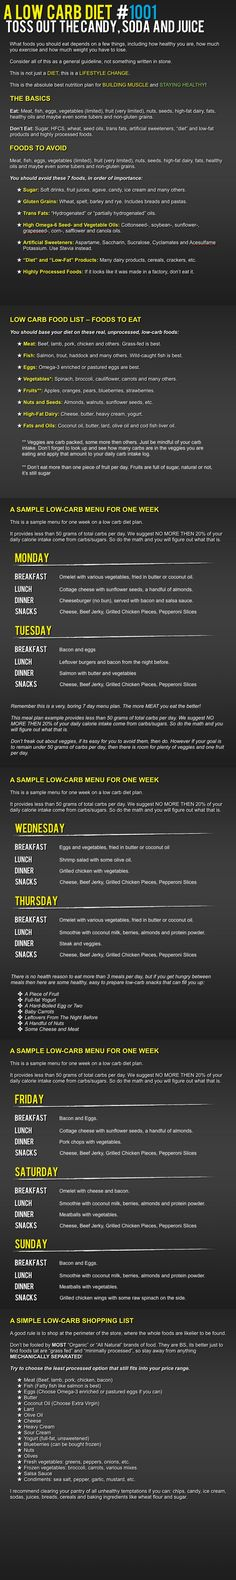 Here is a great graphic for those who like low carb diet. (includes a food list and simple meal plan)